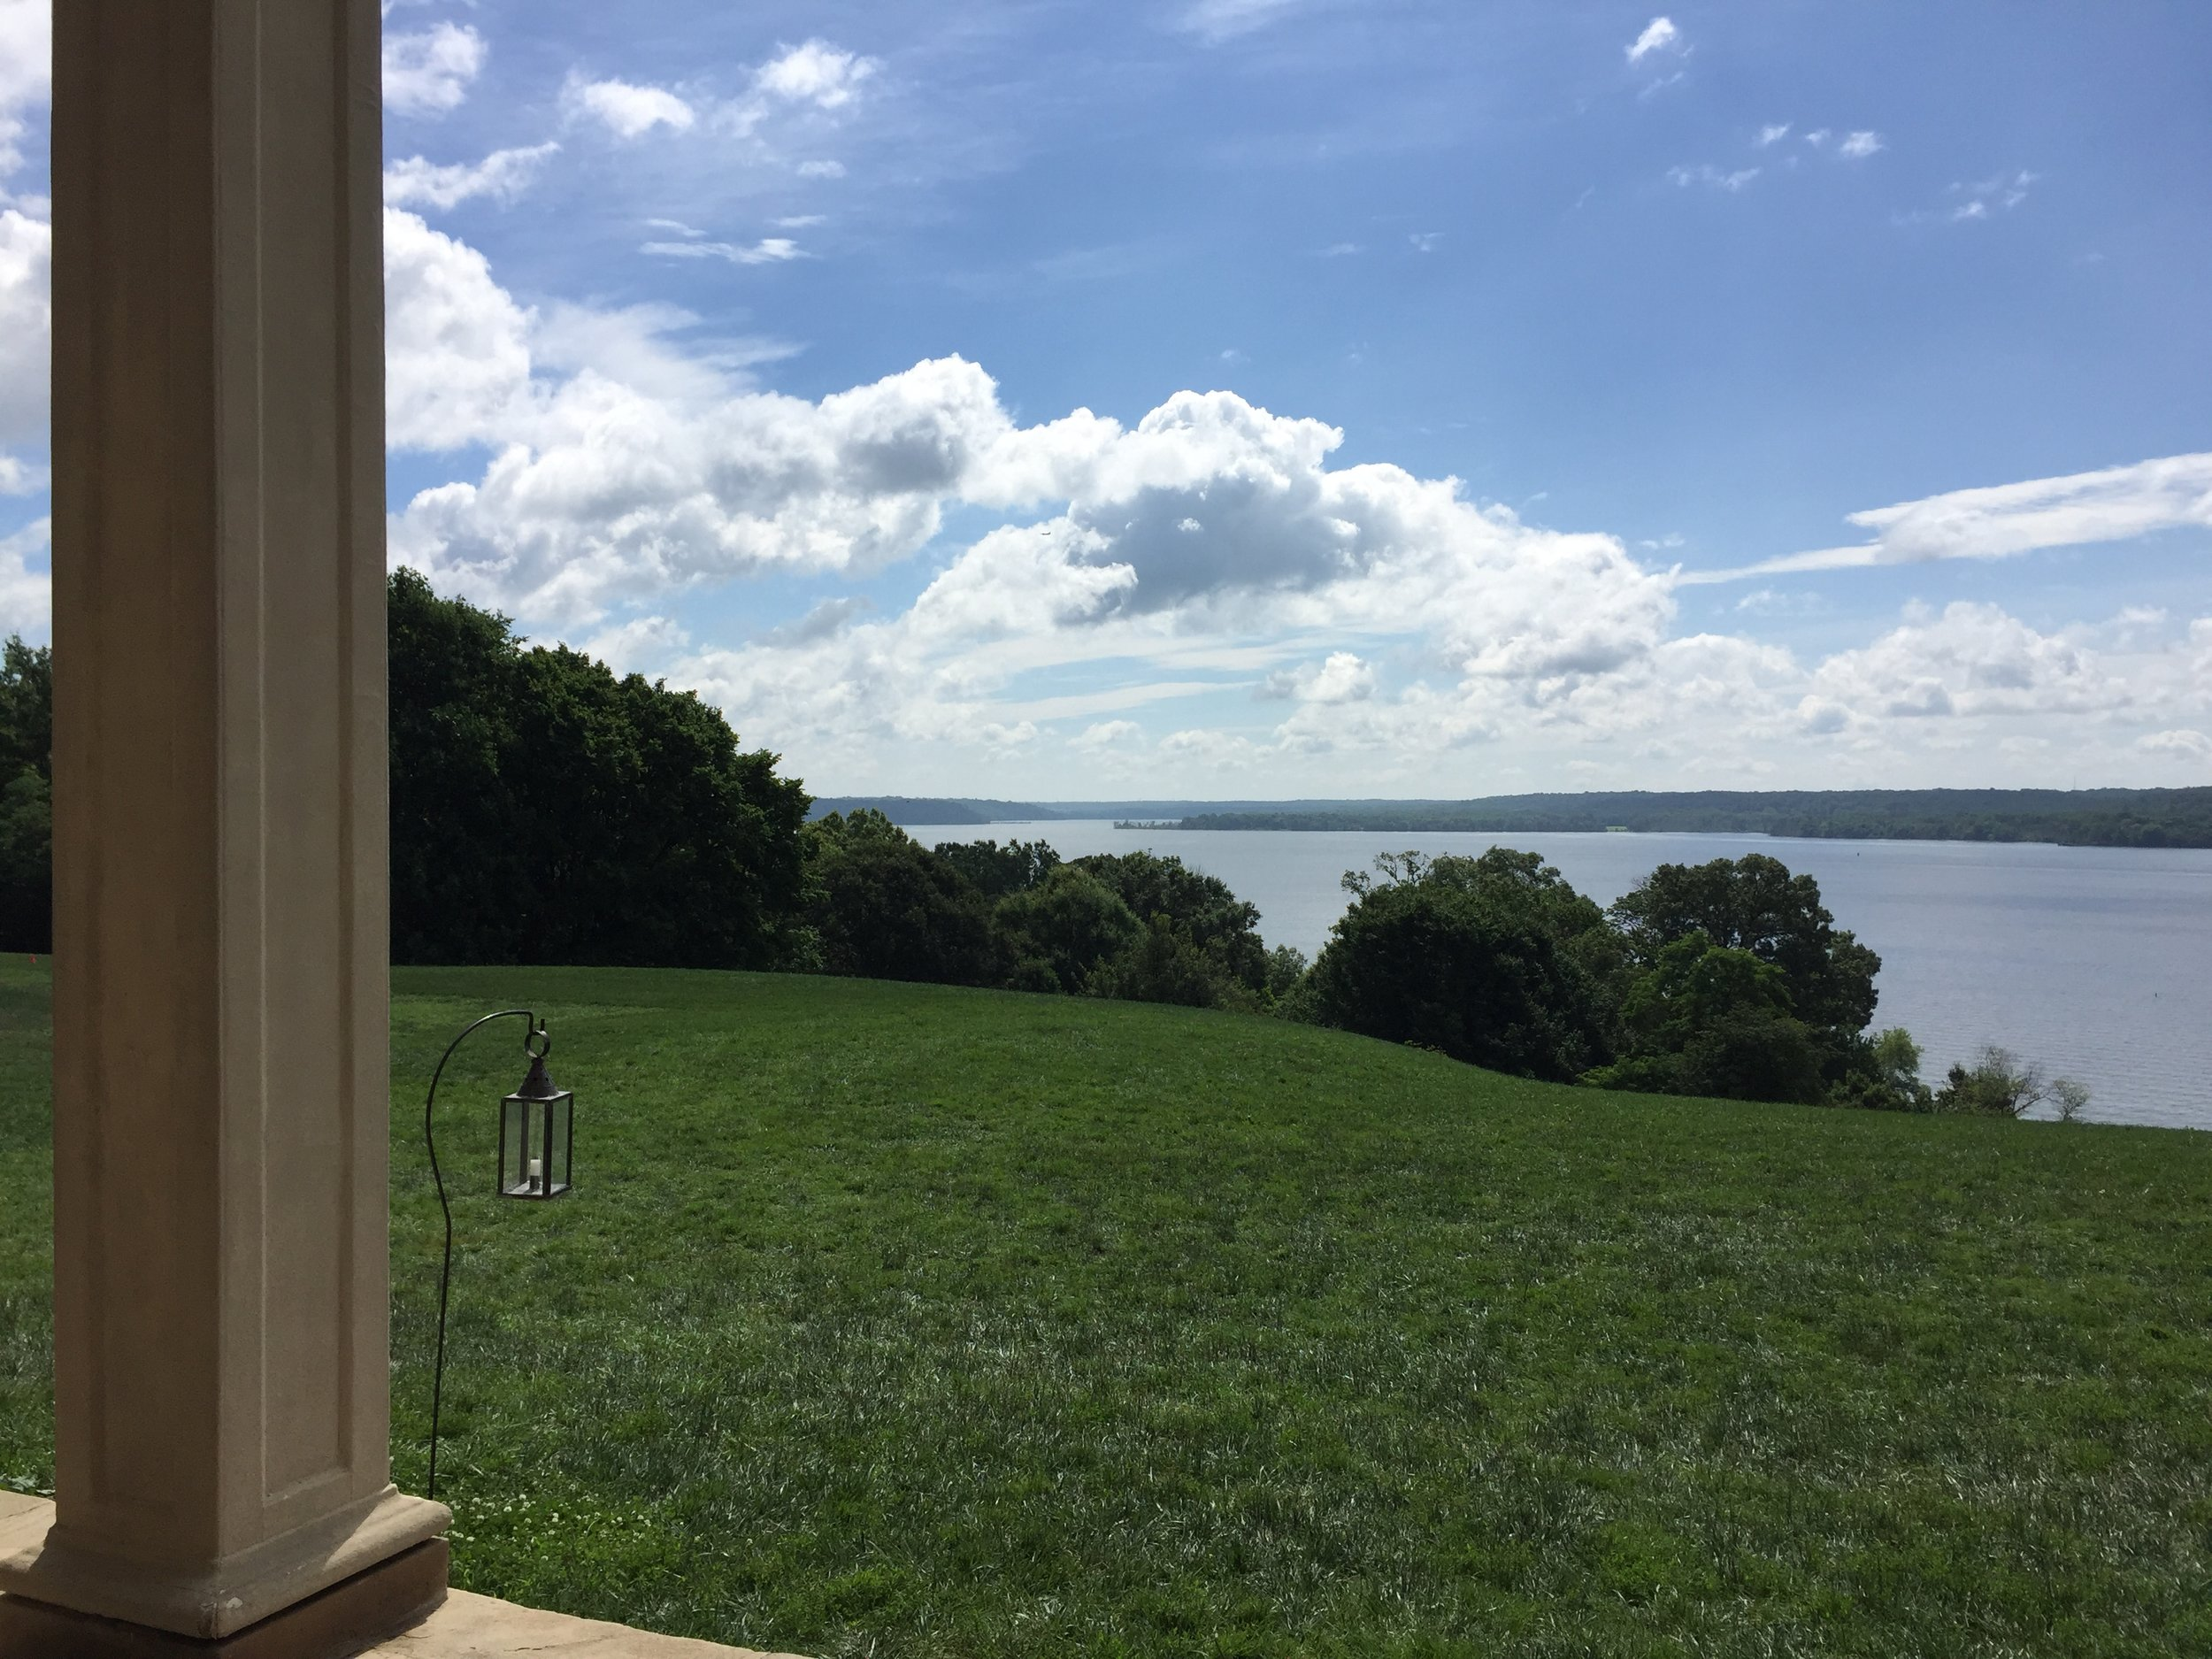 The view from the back portico at Mount Vernon, across the Potomac River and into Maryland, remains largely undeveloped due in part to the efforts of the Mount Vernon Ladies Association.